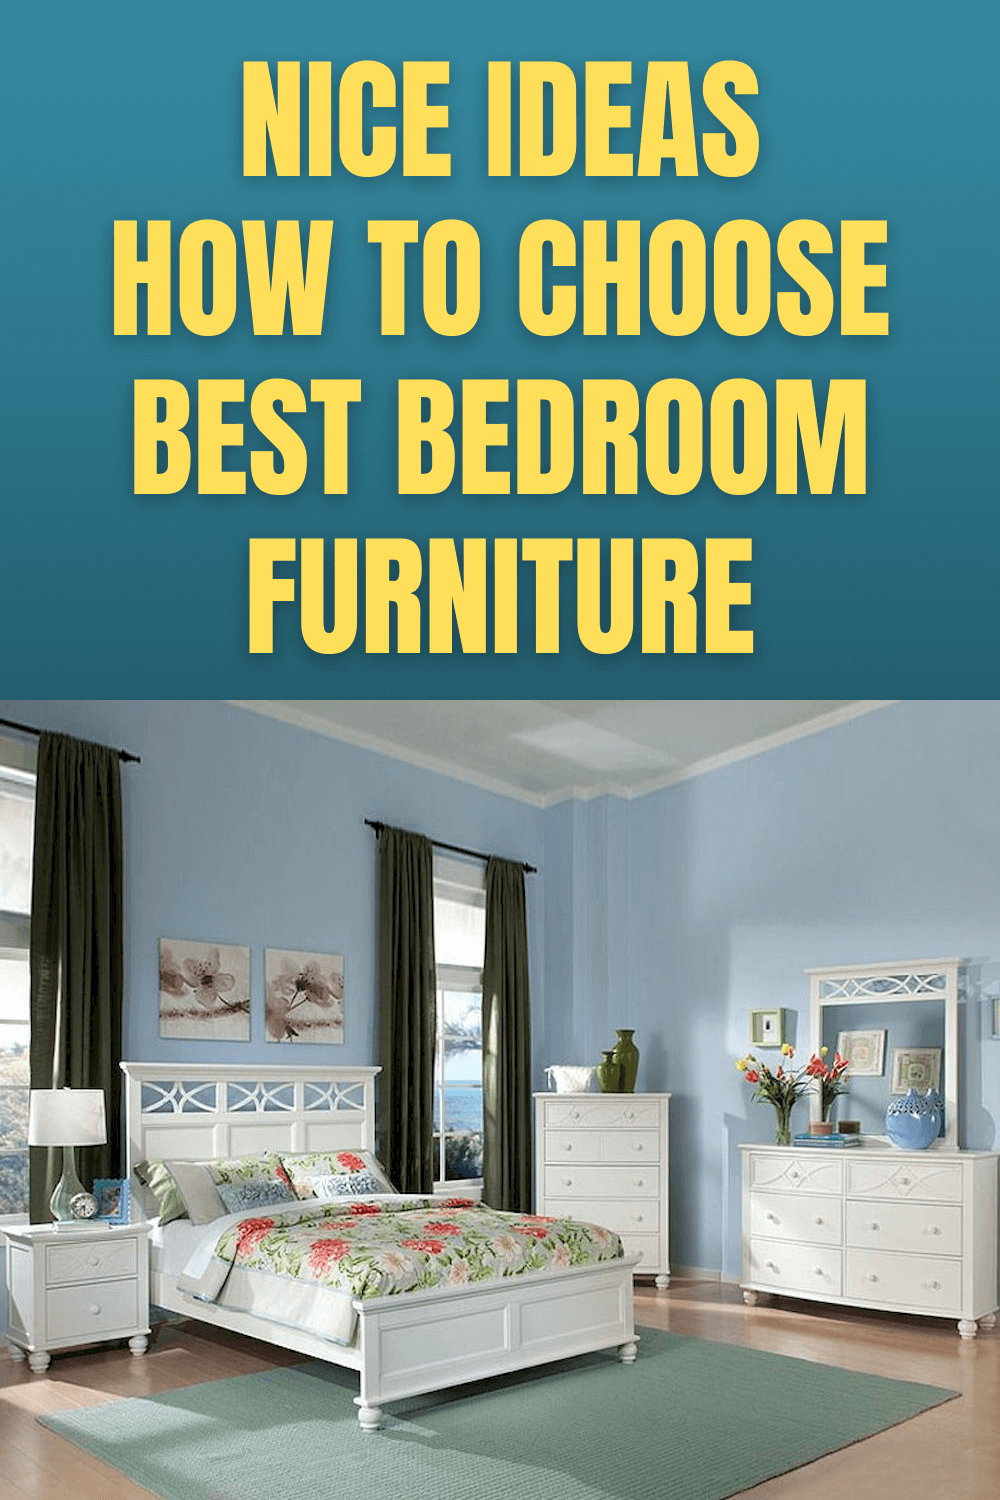 NICE IDEAS HOW TO CHOOSE BEST BEDROOM FURNITURE